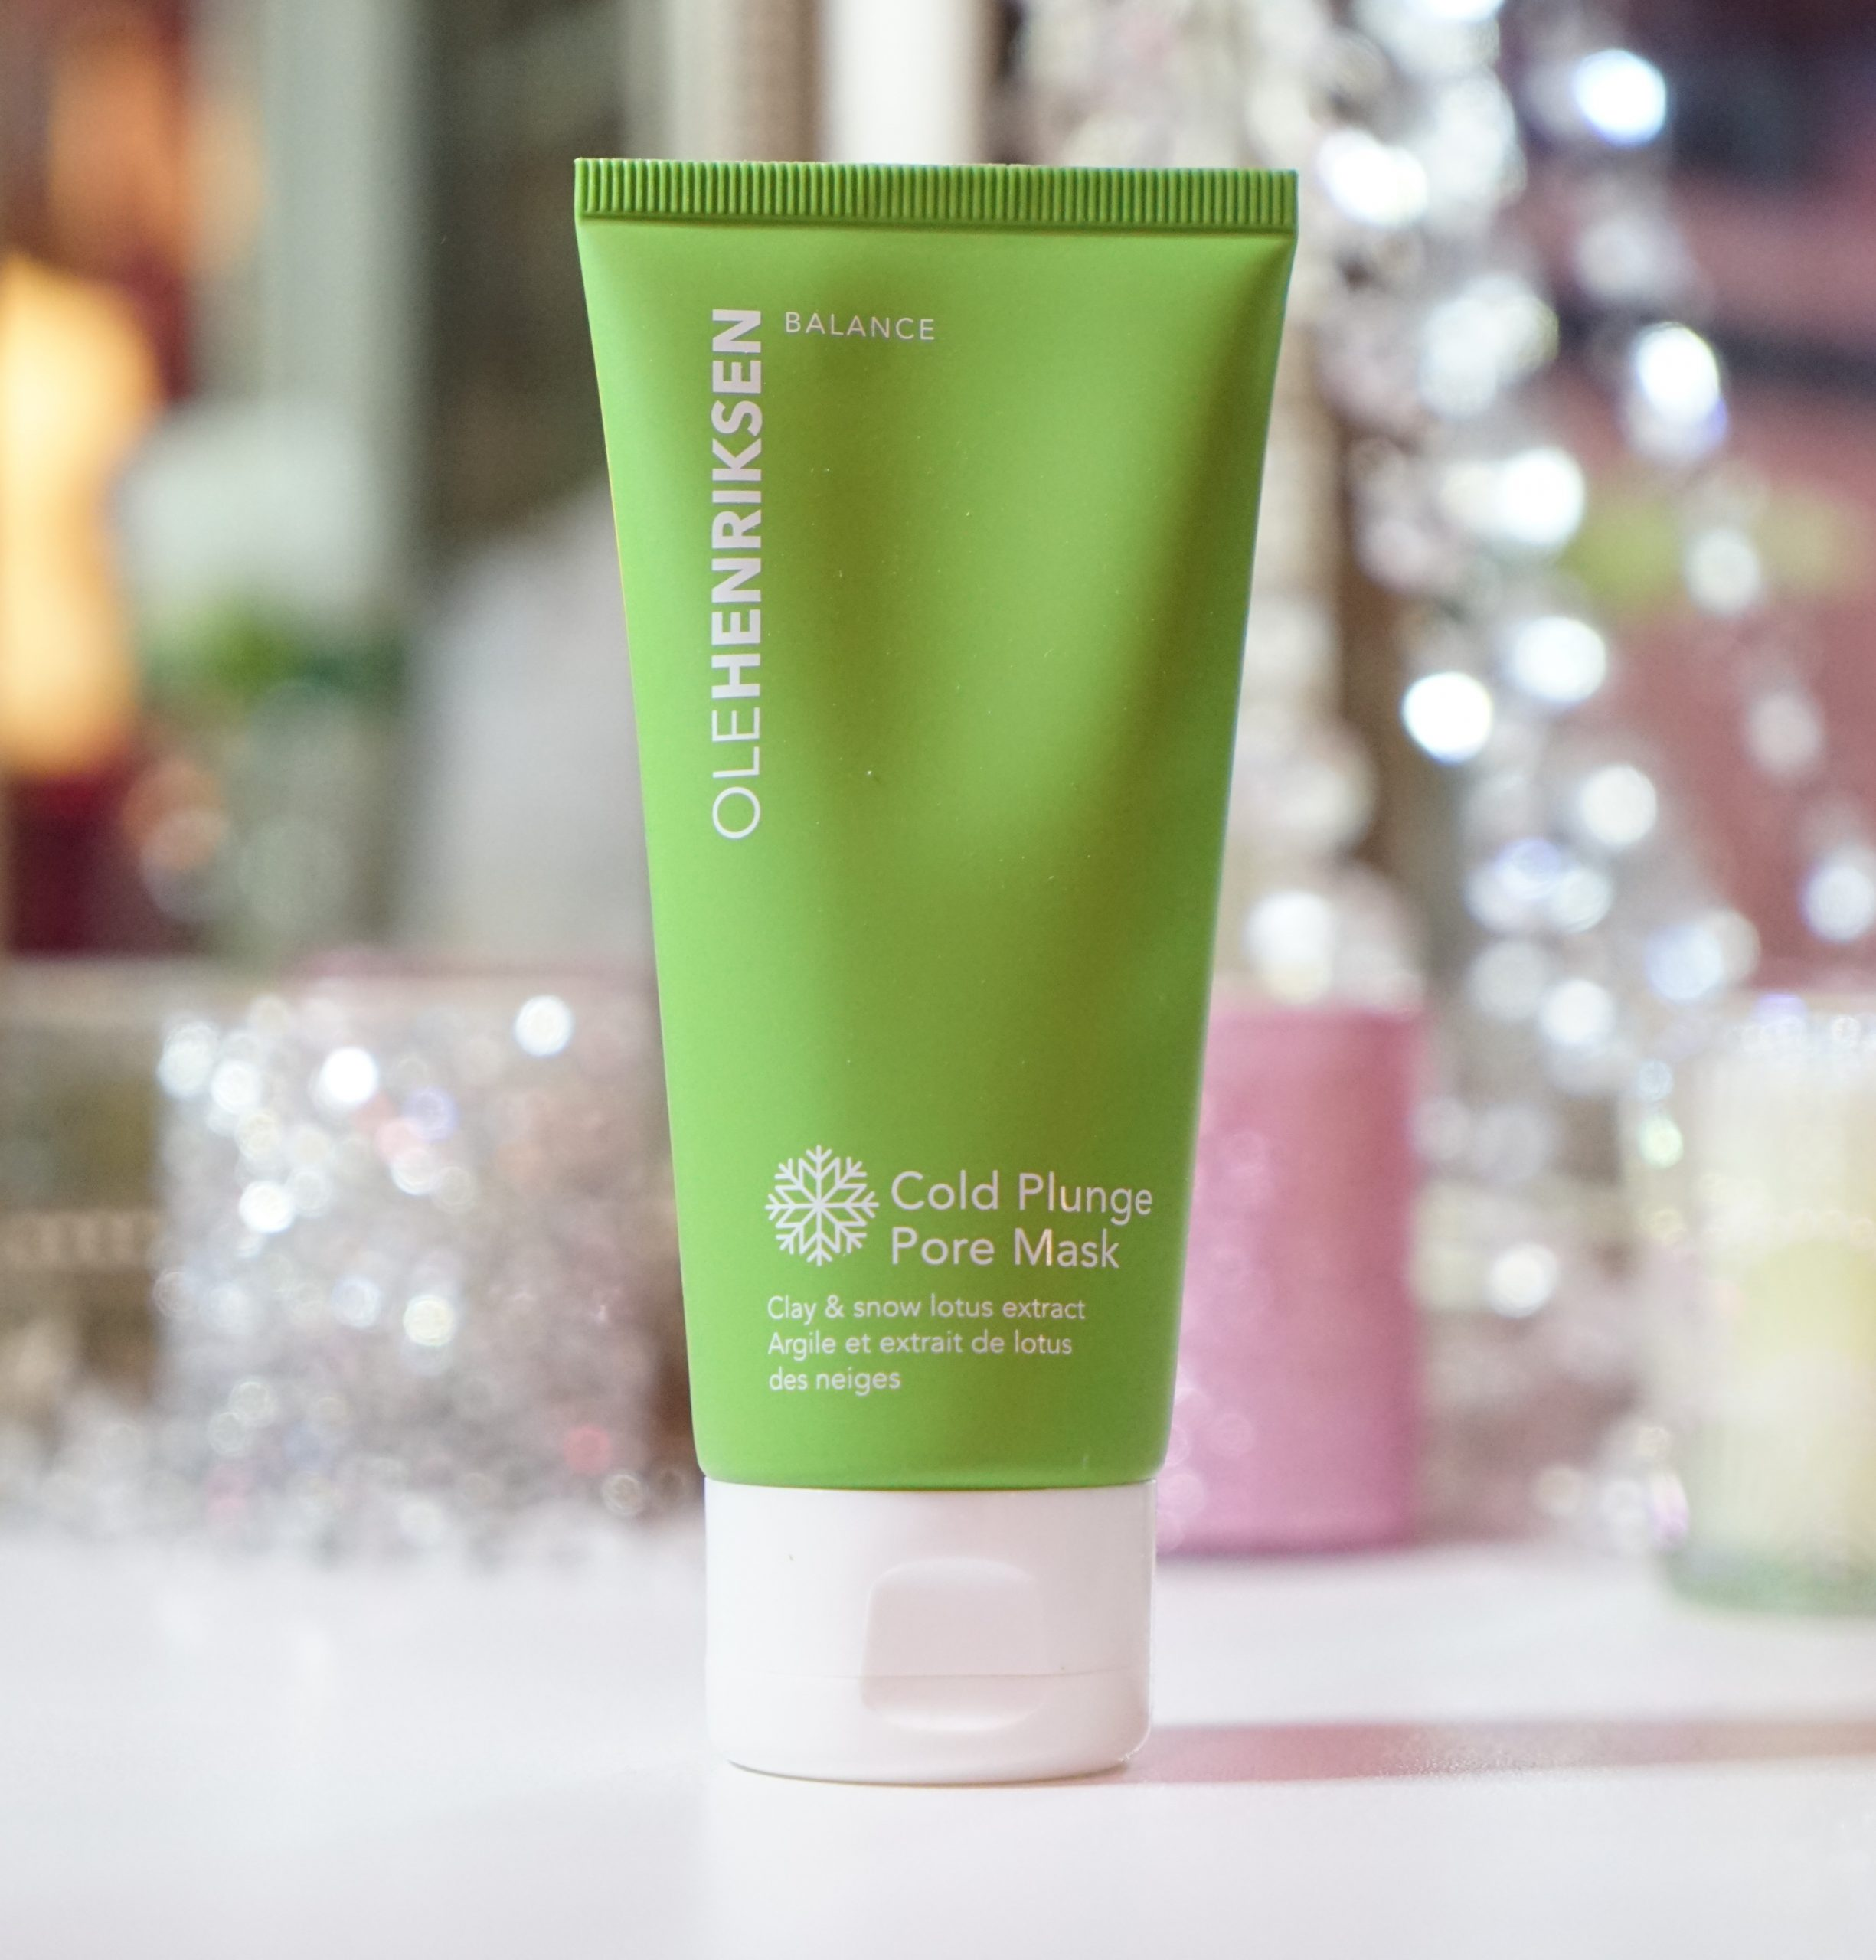 Ole Henriksen Cold Plunge Pore Mask Review